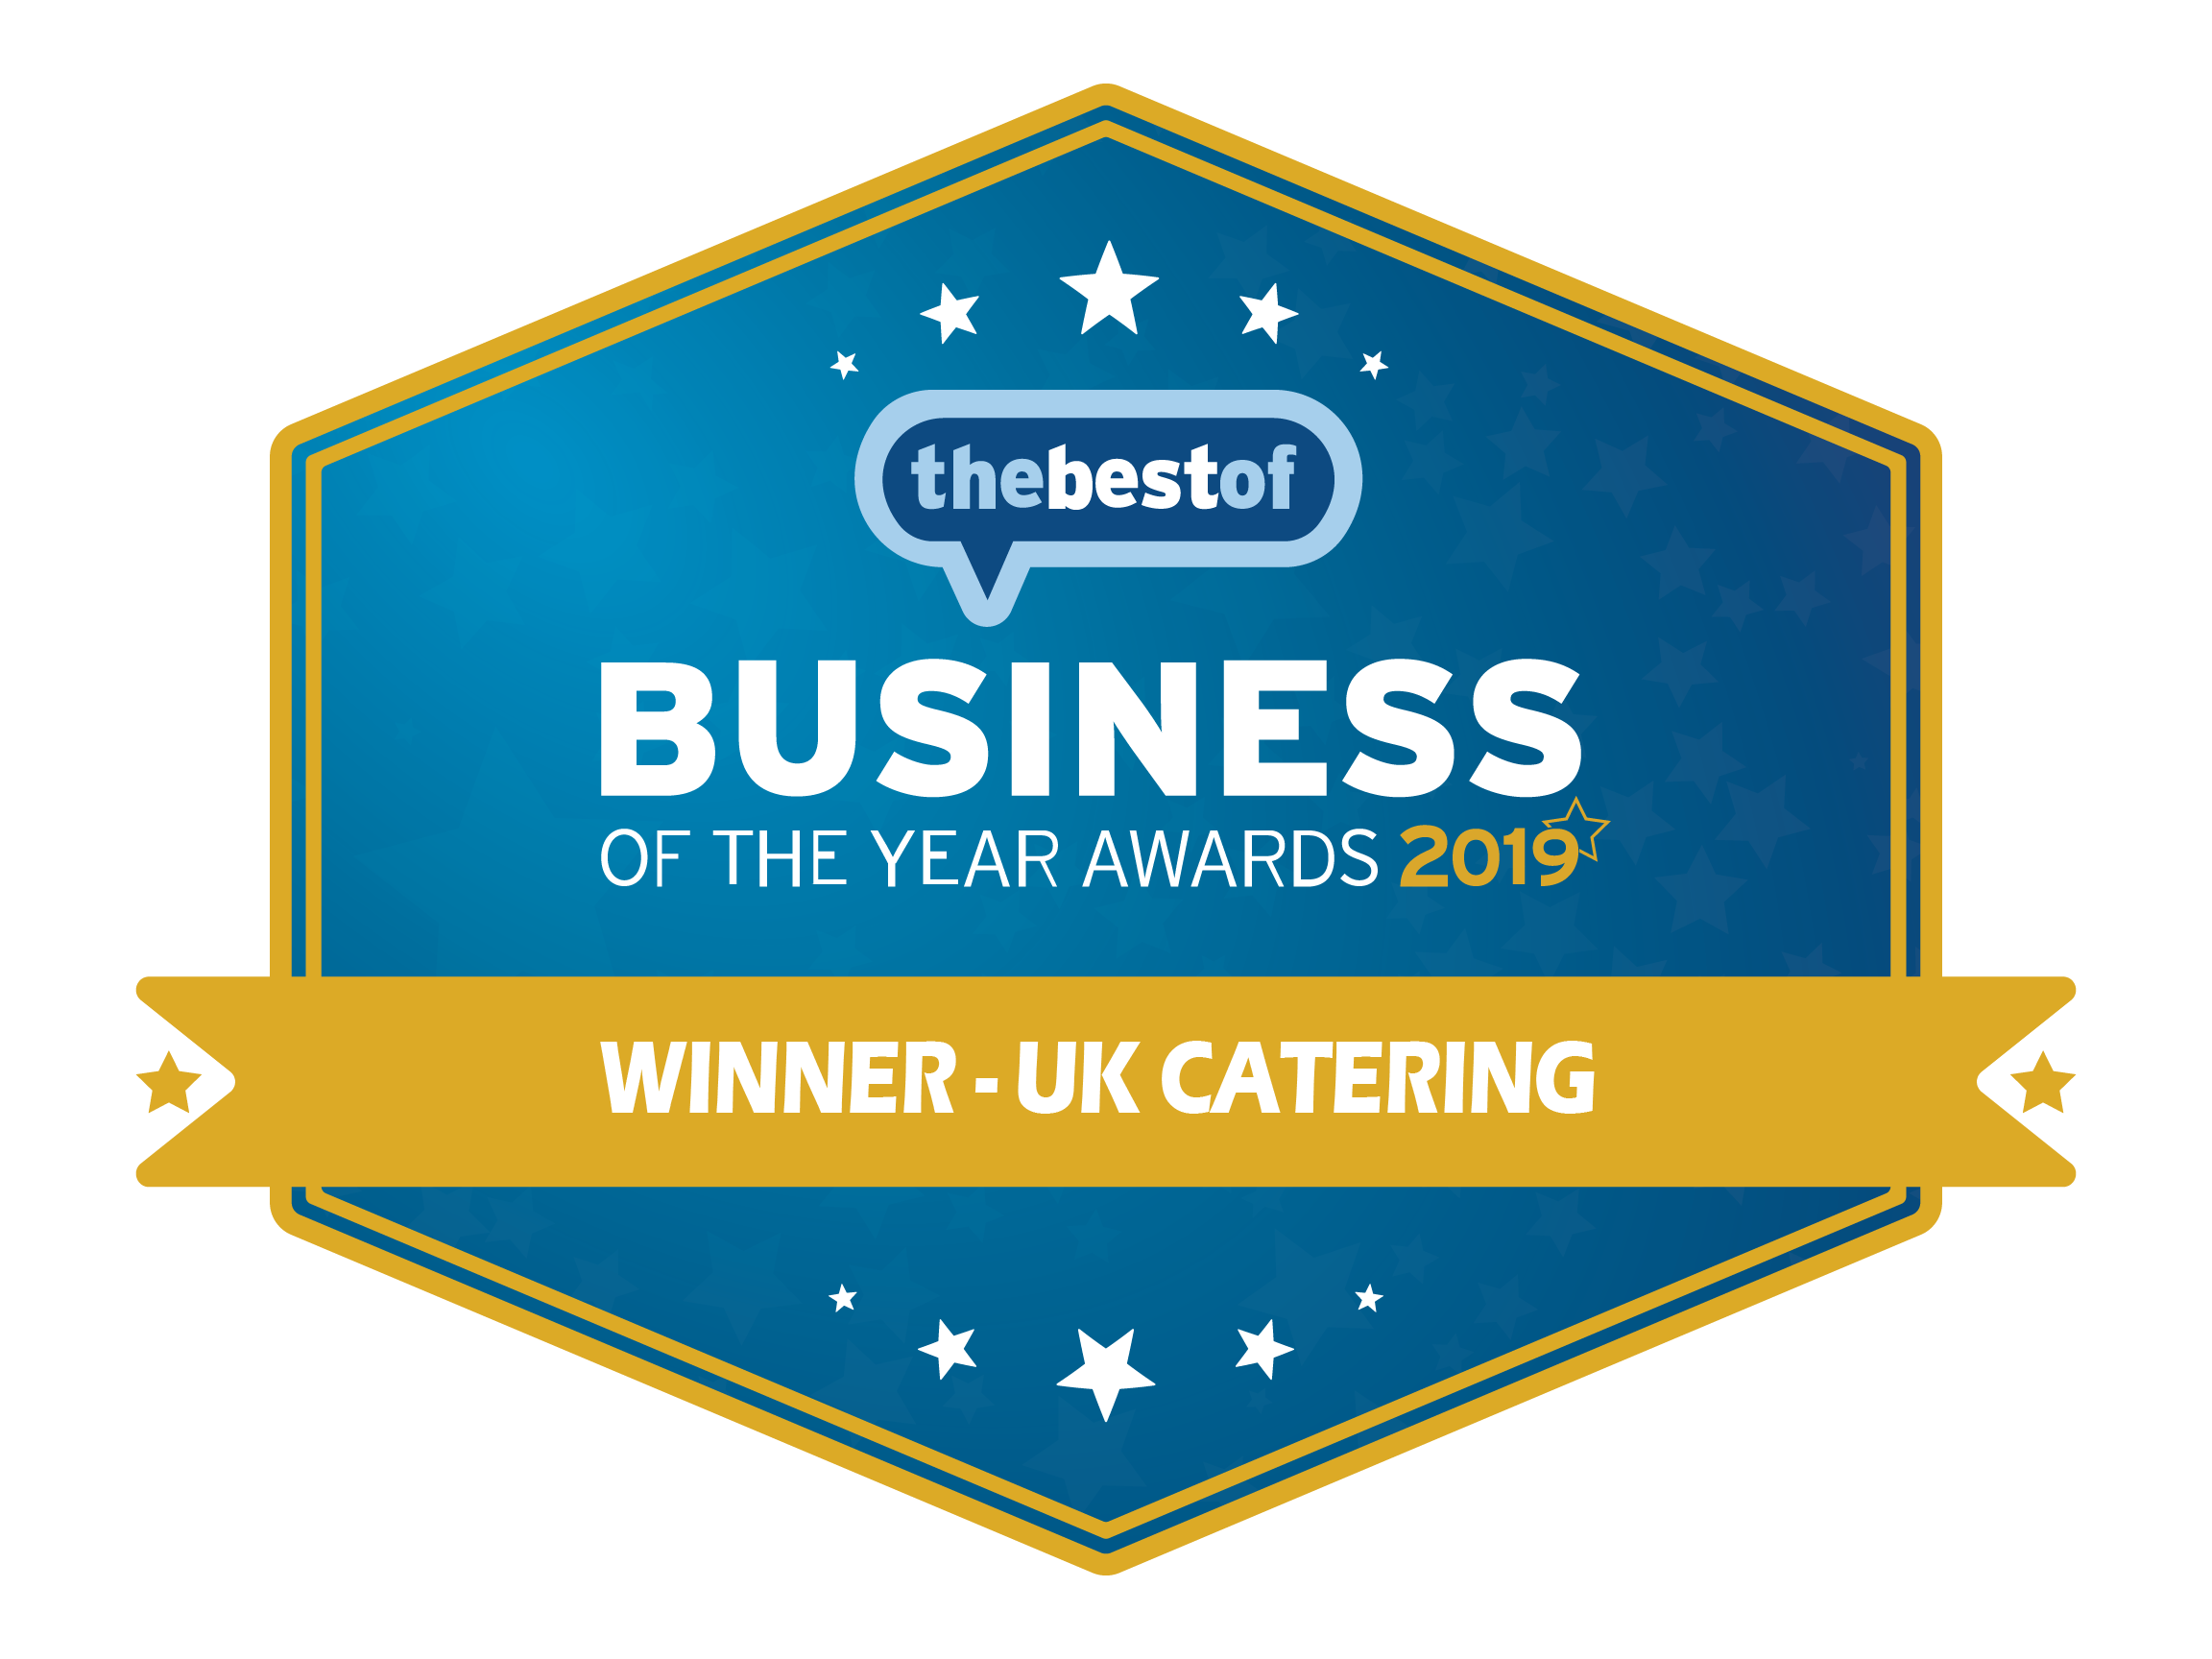 Winner in category for catering business awards